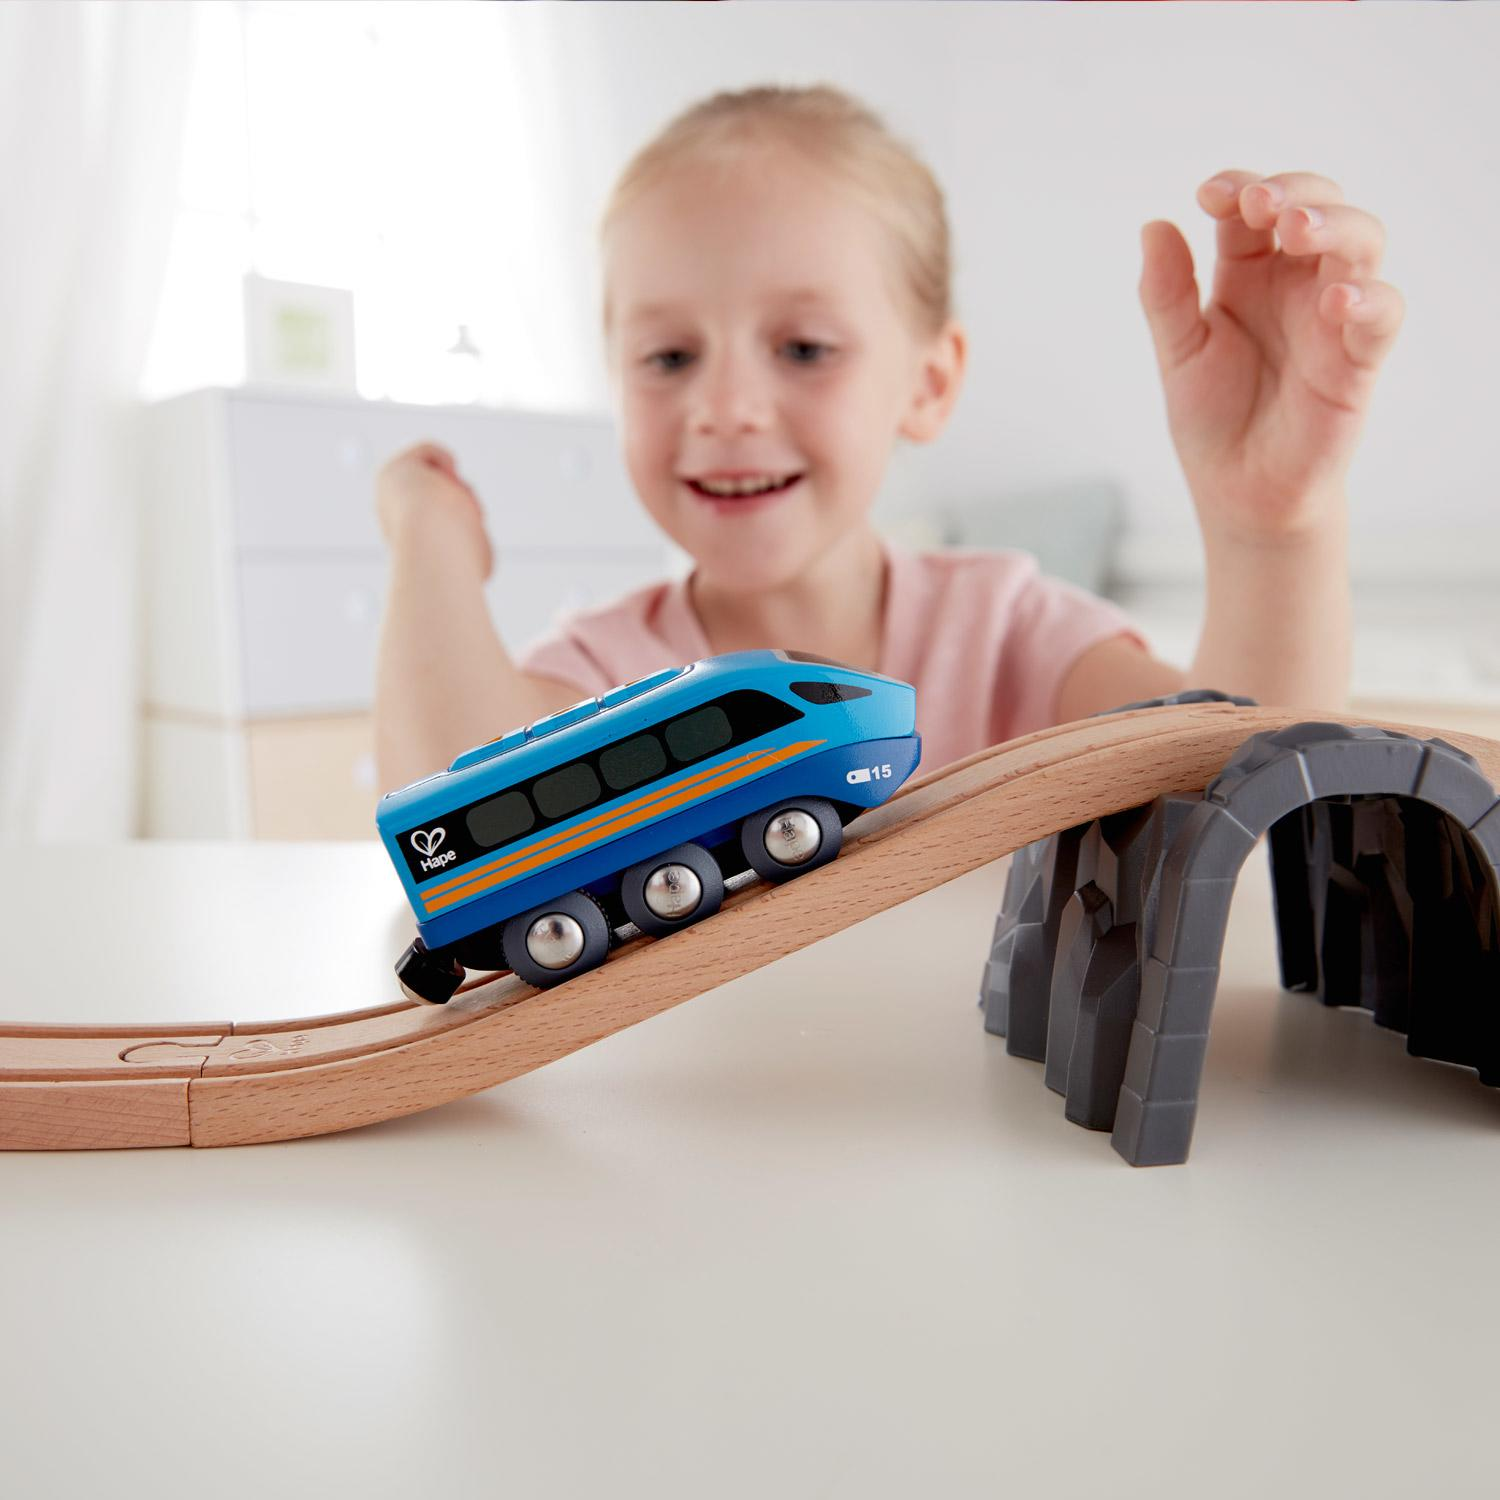 Hape Blue Remote Control Train. Control this engine with your mobile phone